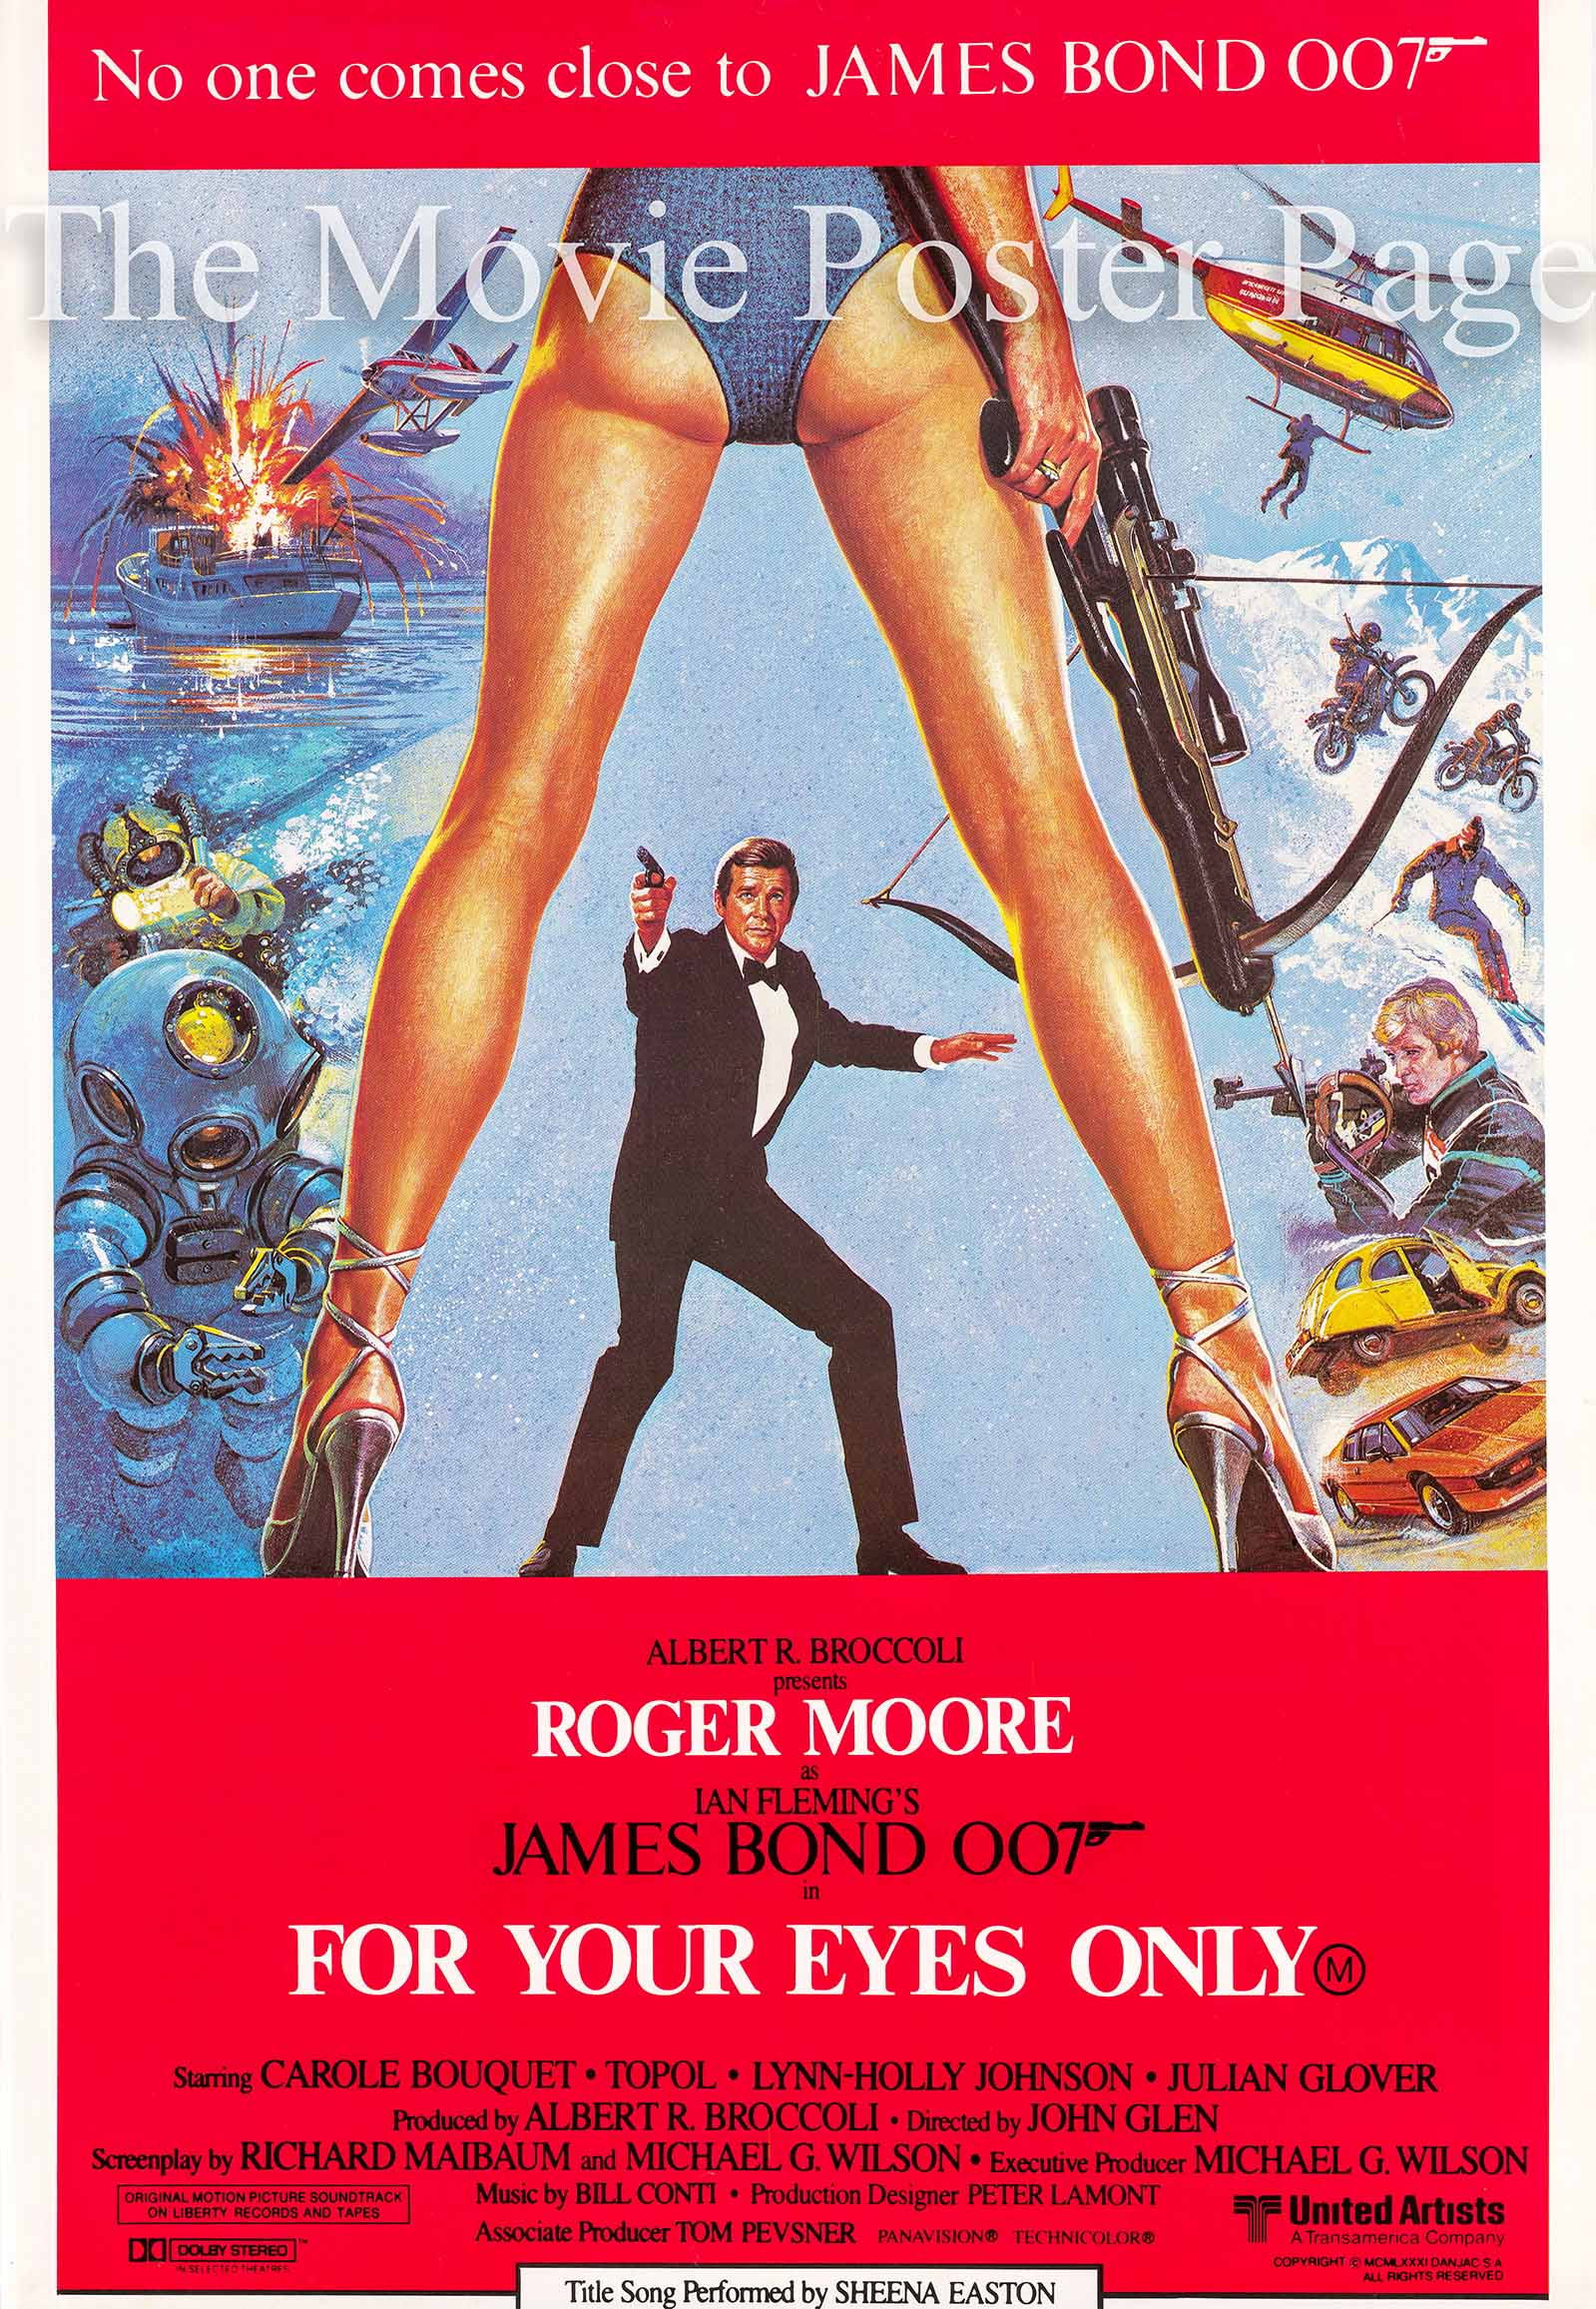 This is an image of an Australian promotional poster for the 1981 John Glen film For Your Eyes Only starring Roger Moore.